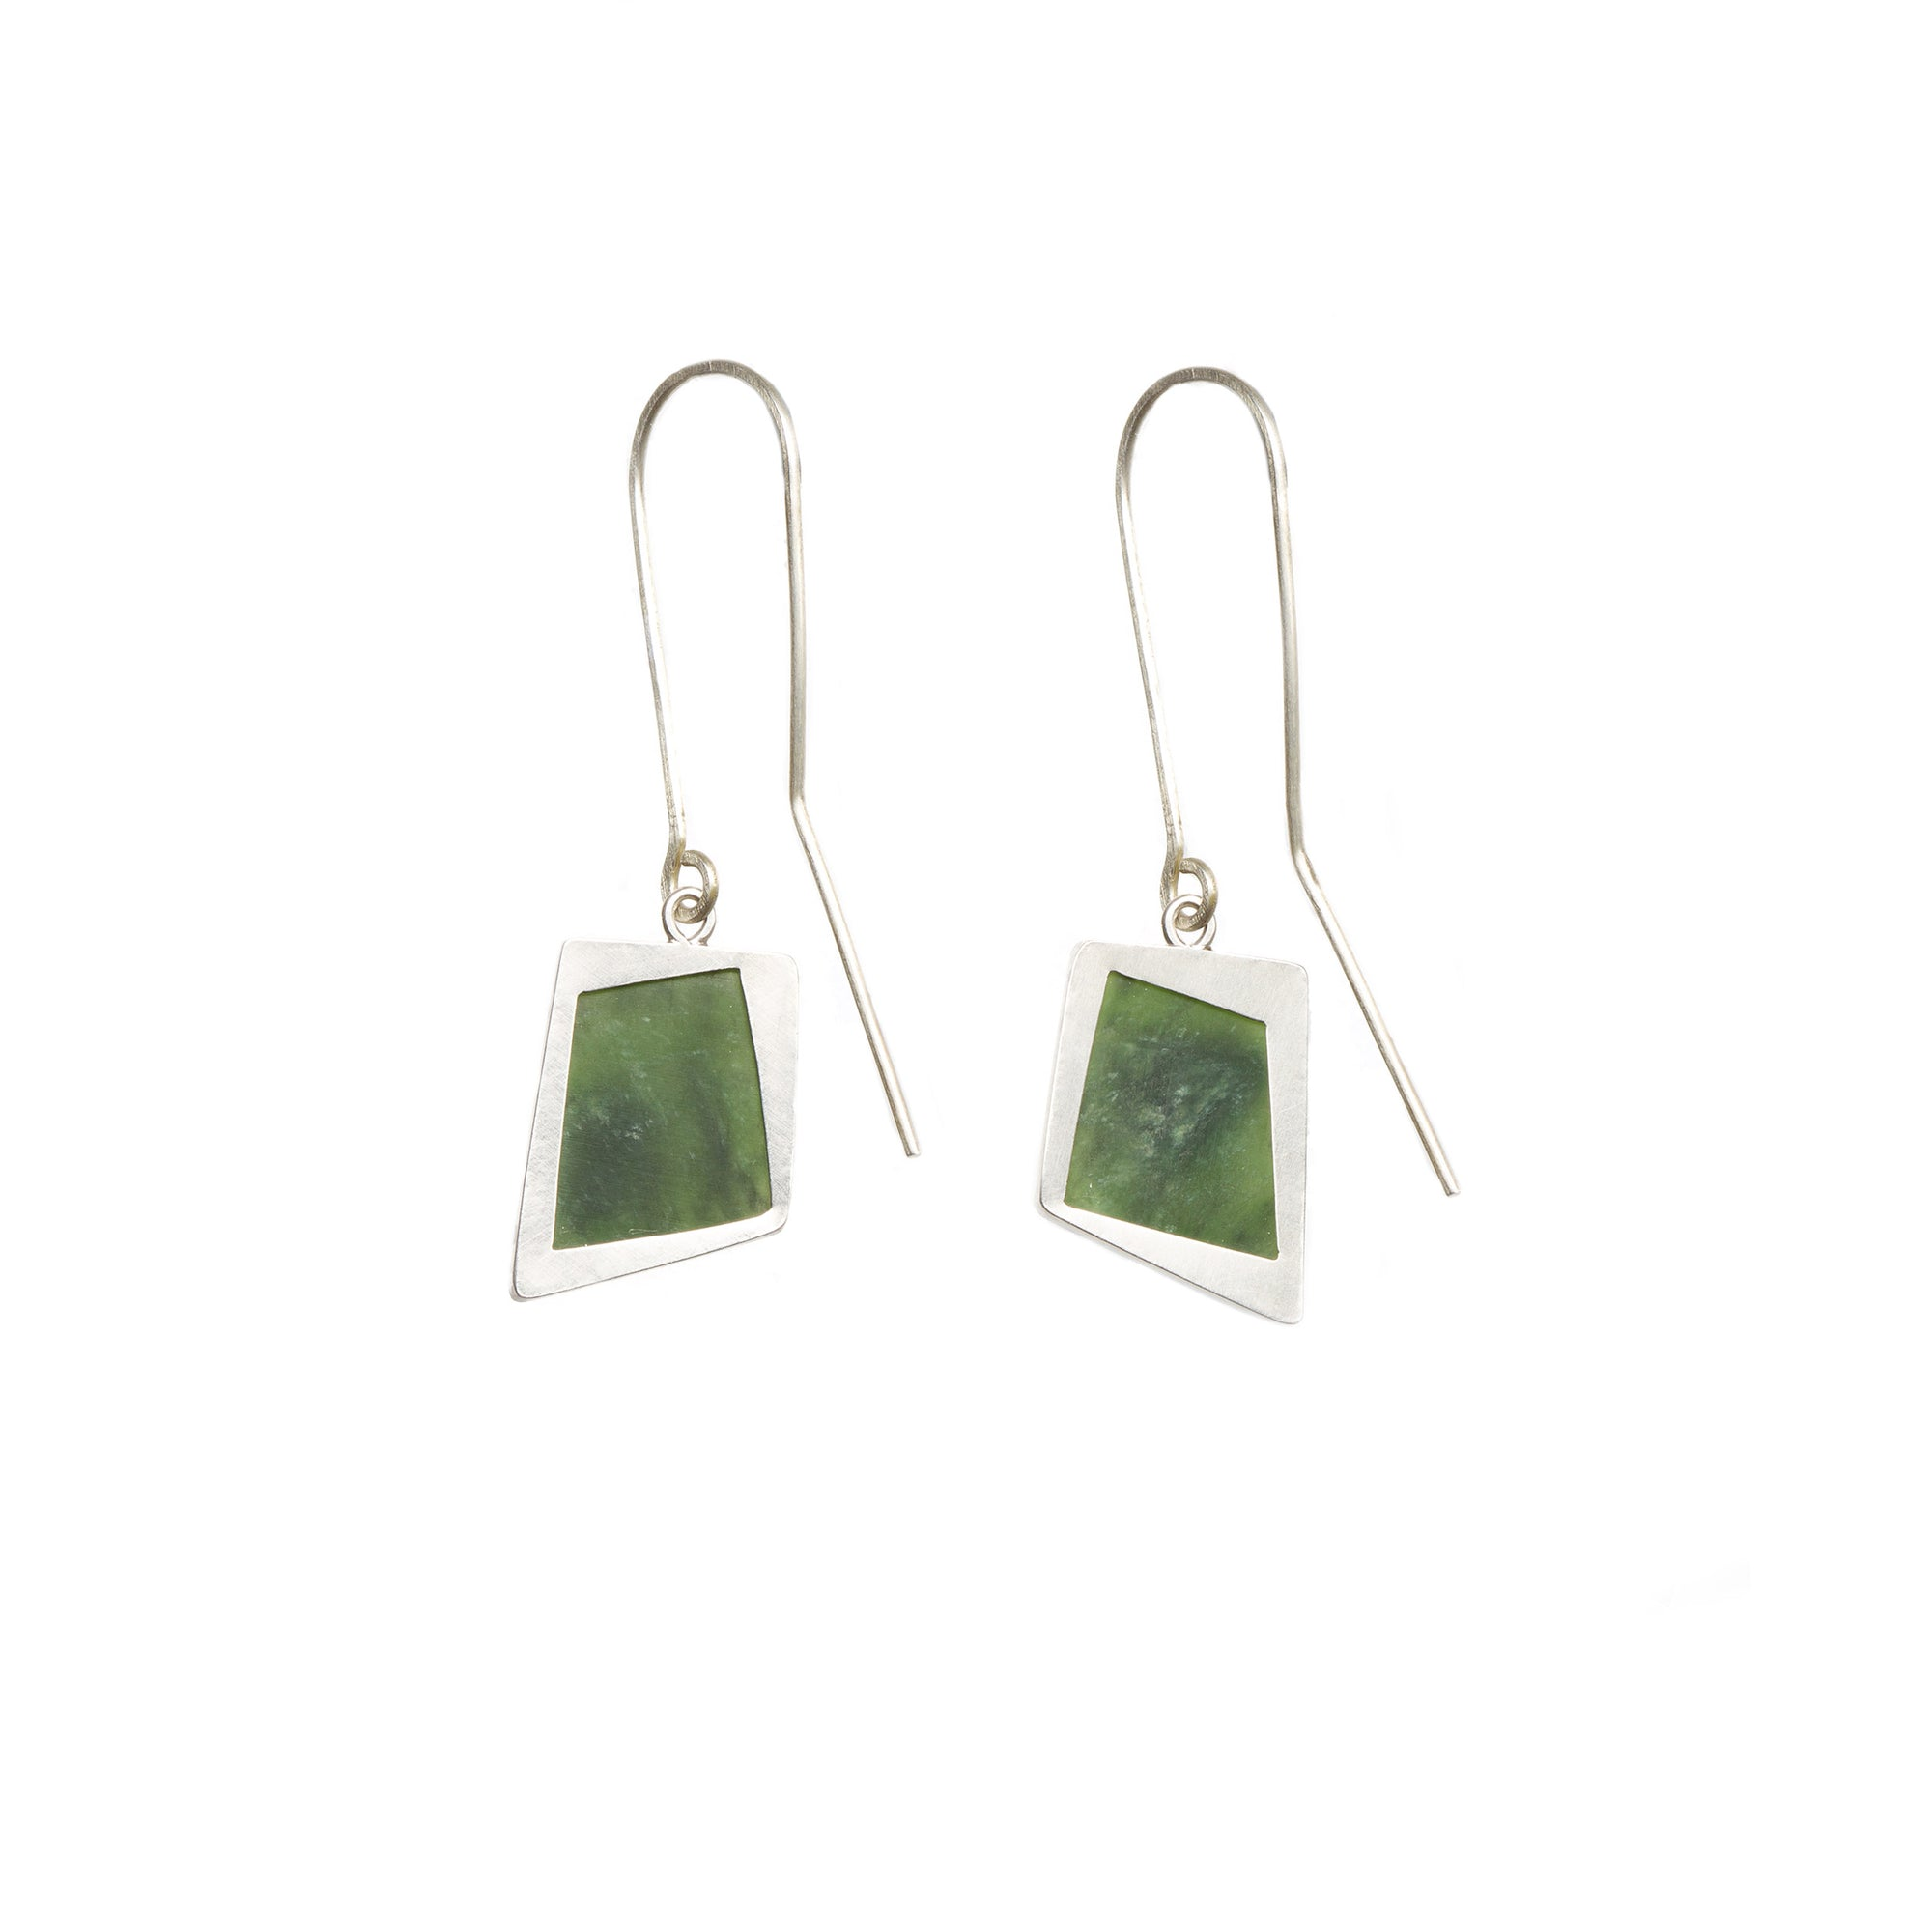 New Zealand Pounamu Faceted Sterling Silver Earrings